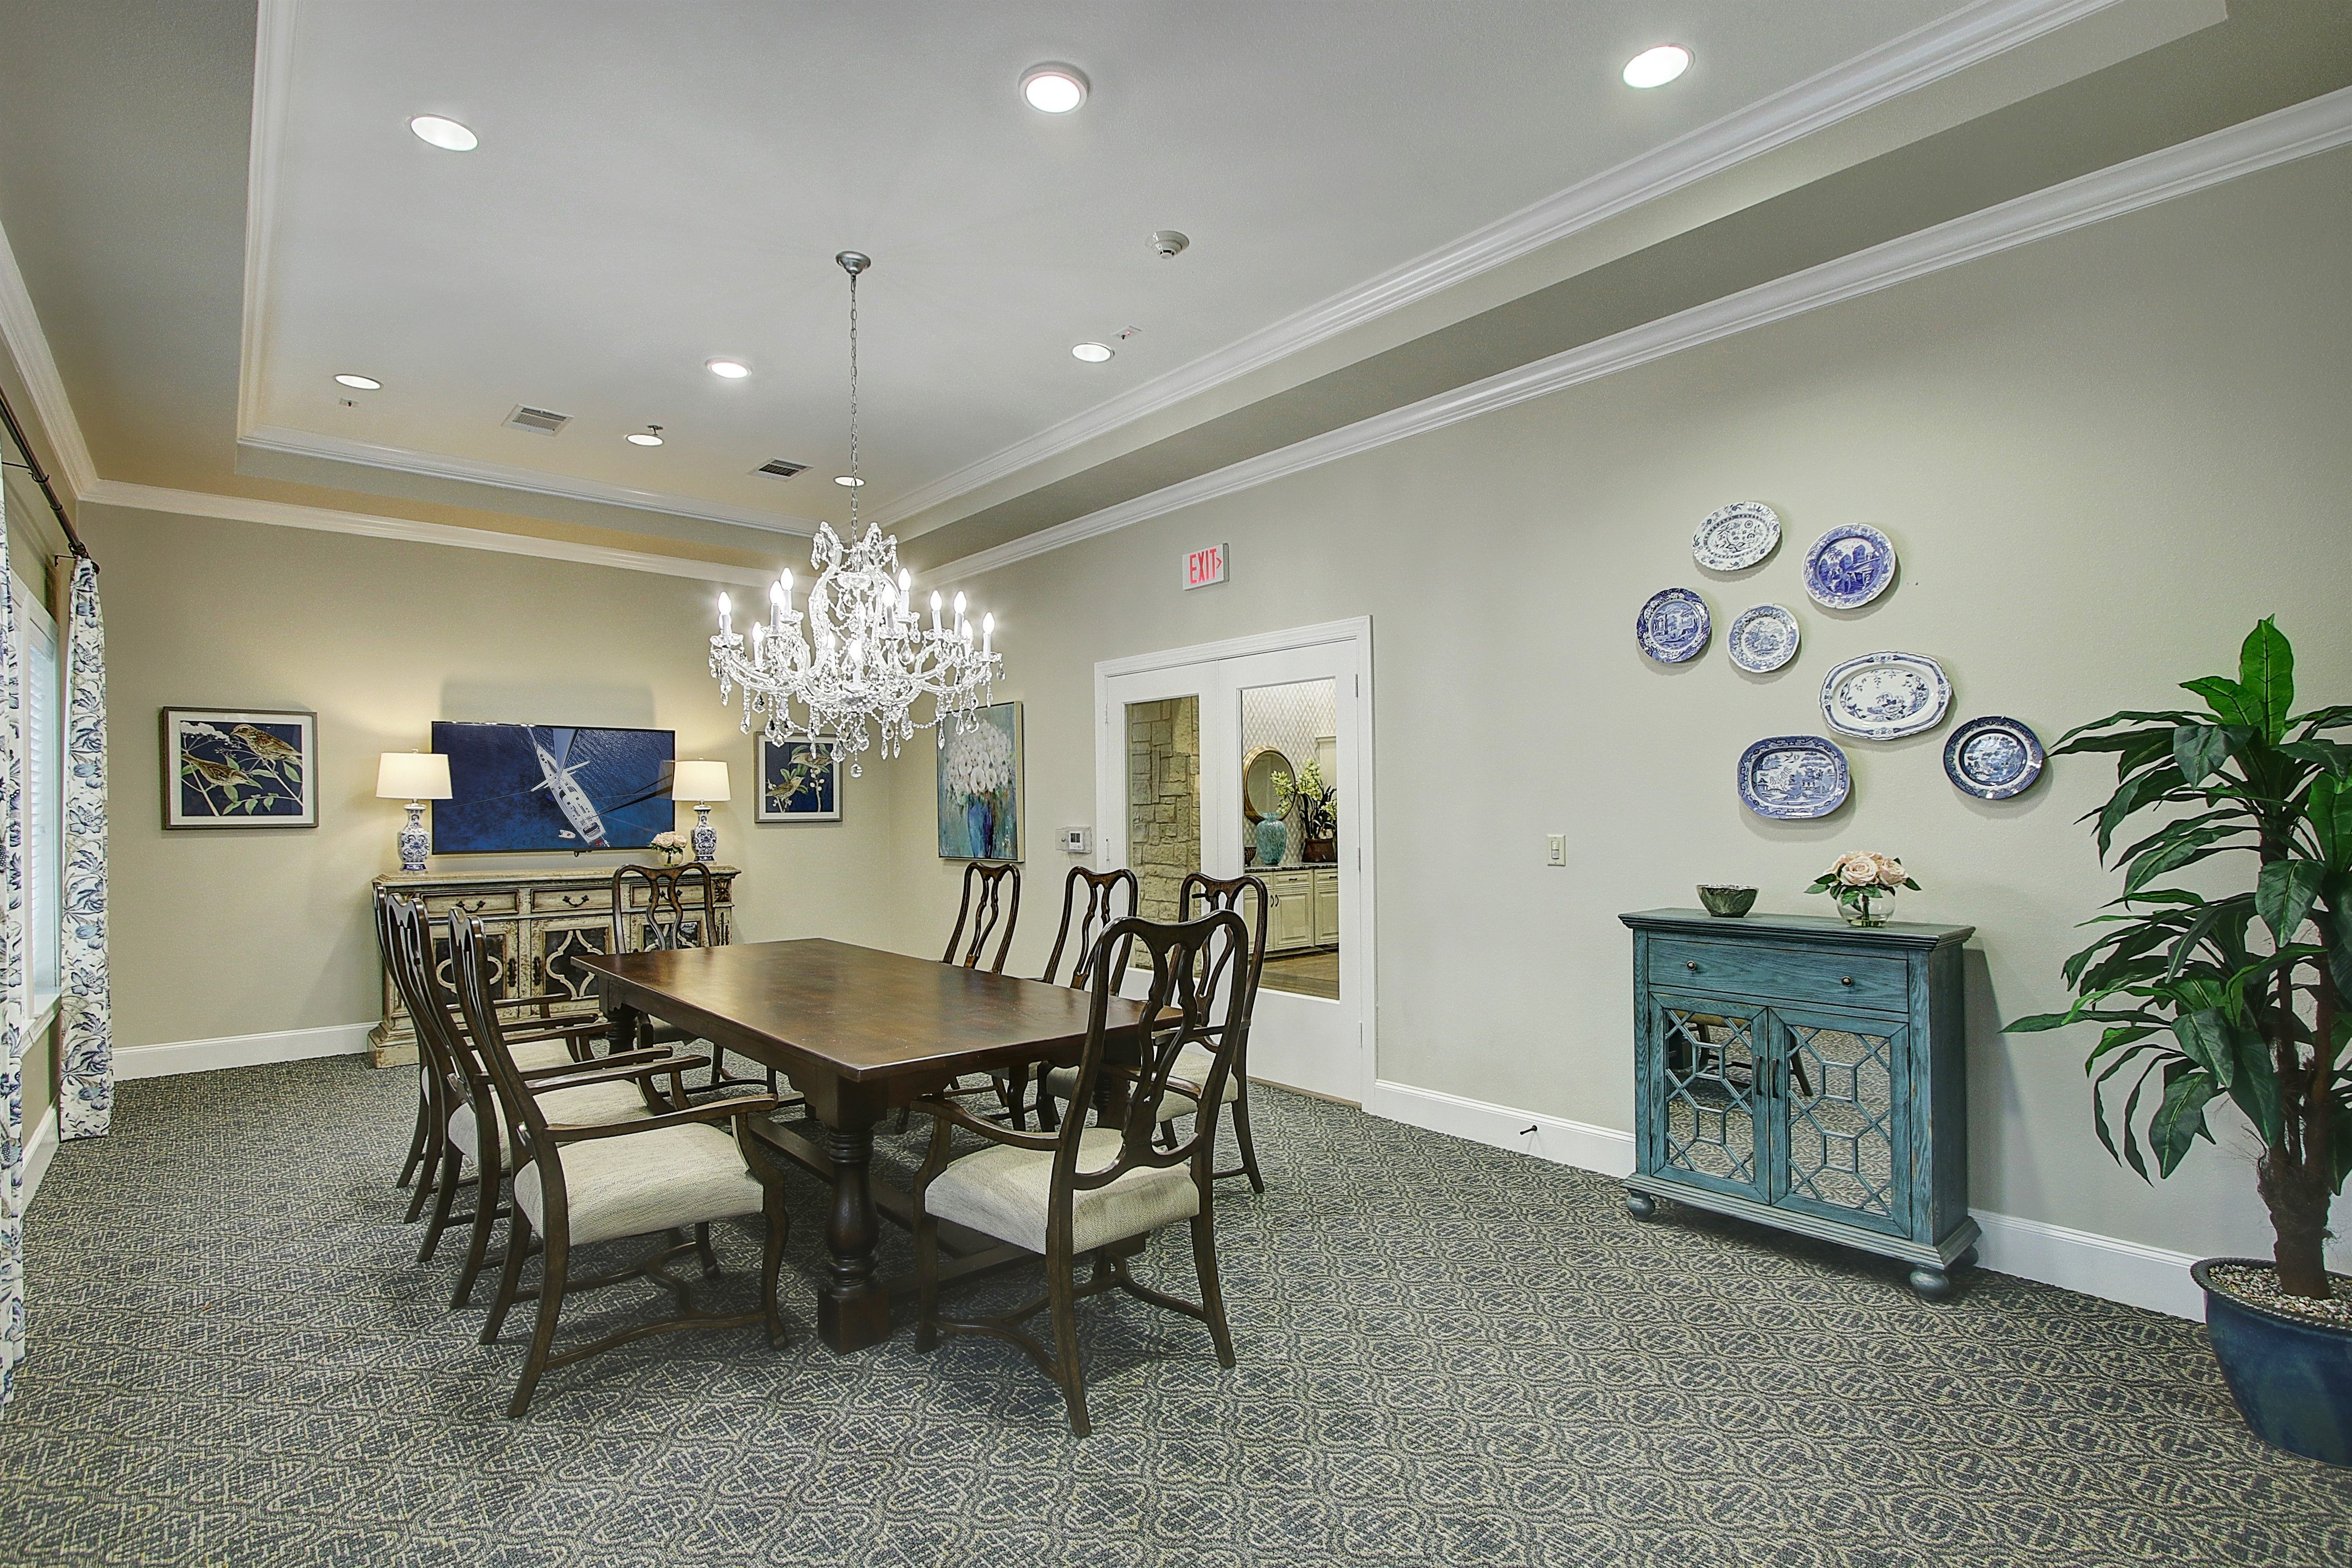 The Oaks At Flower Mound Assisted Living And Memory Care Is A Community Built On Passion With Purpose W Assisted Living Floor To Ceiling Windows Cozy Interior